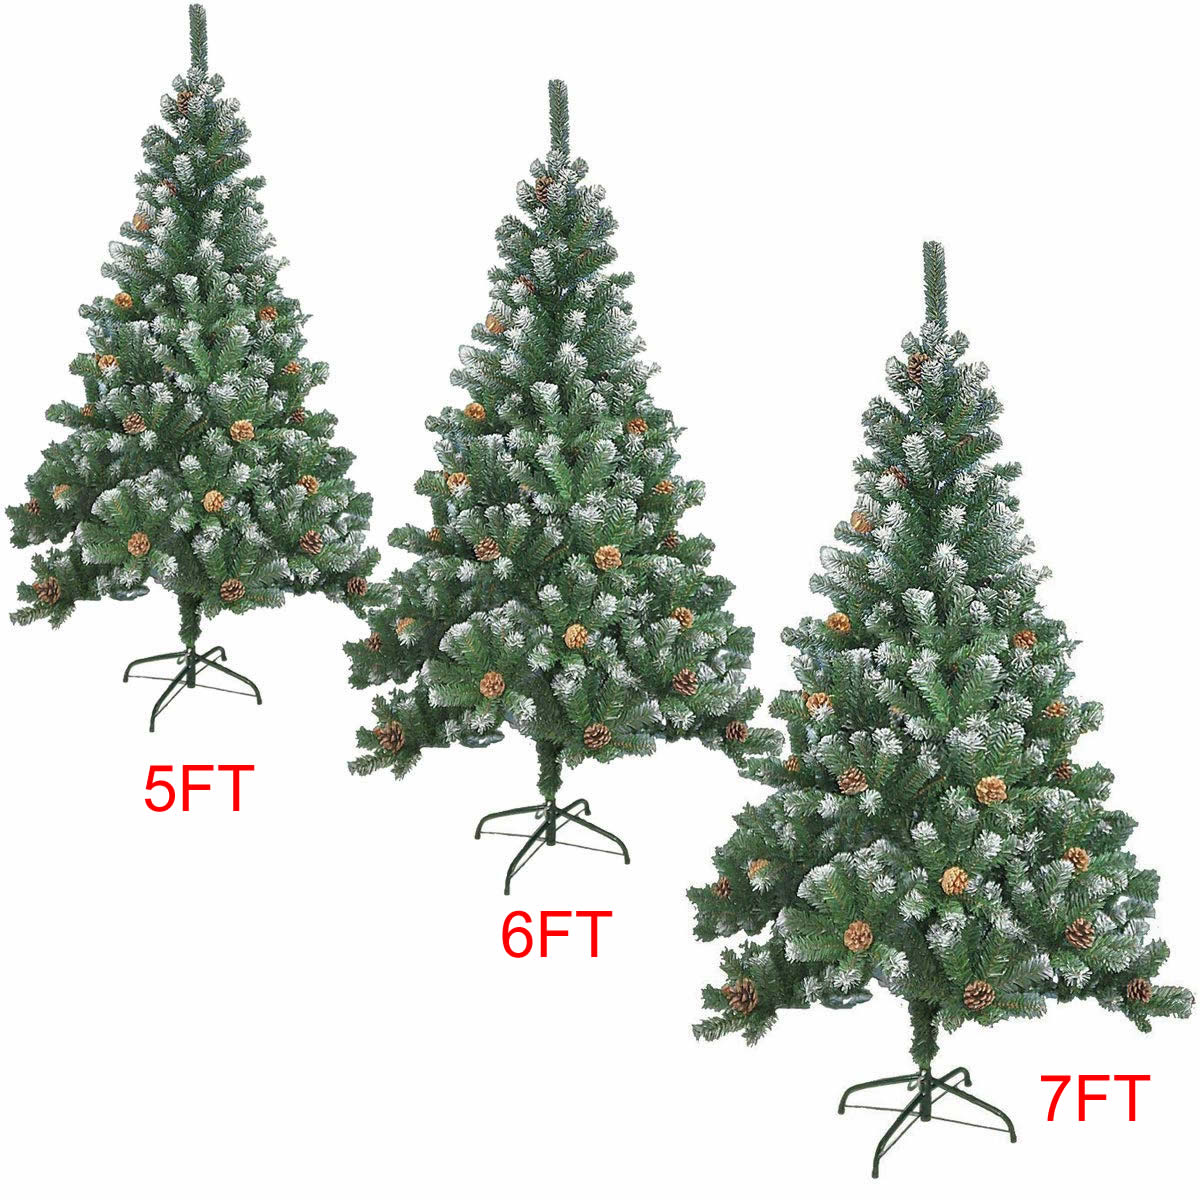 7ft Christmas Tree.Details About 5 6 7ft Large Artificial Christmas Tree Snow Cones Realistic Xmas Decoration